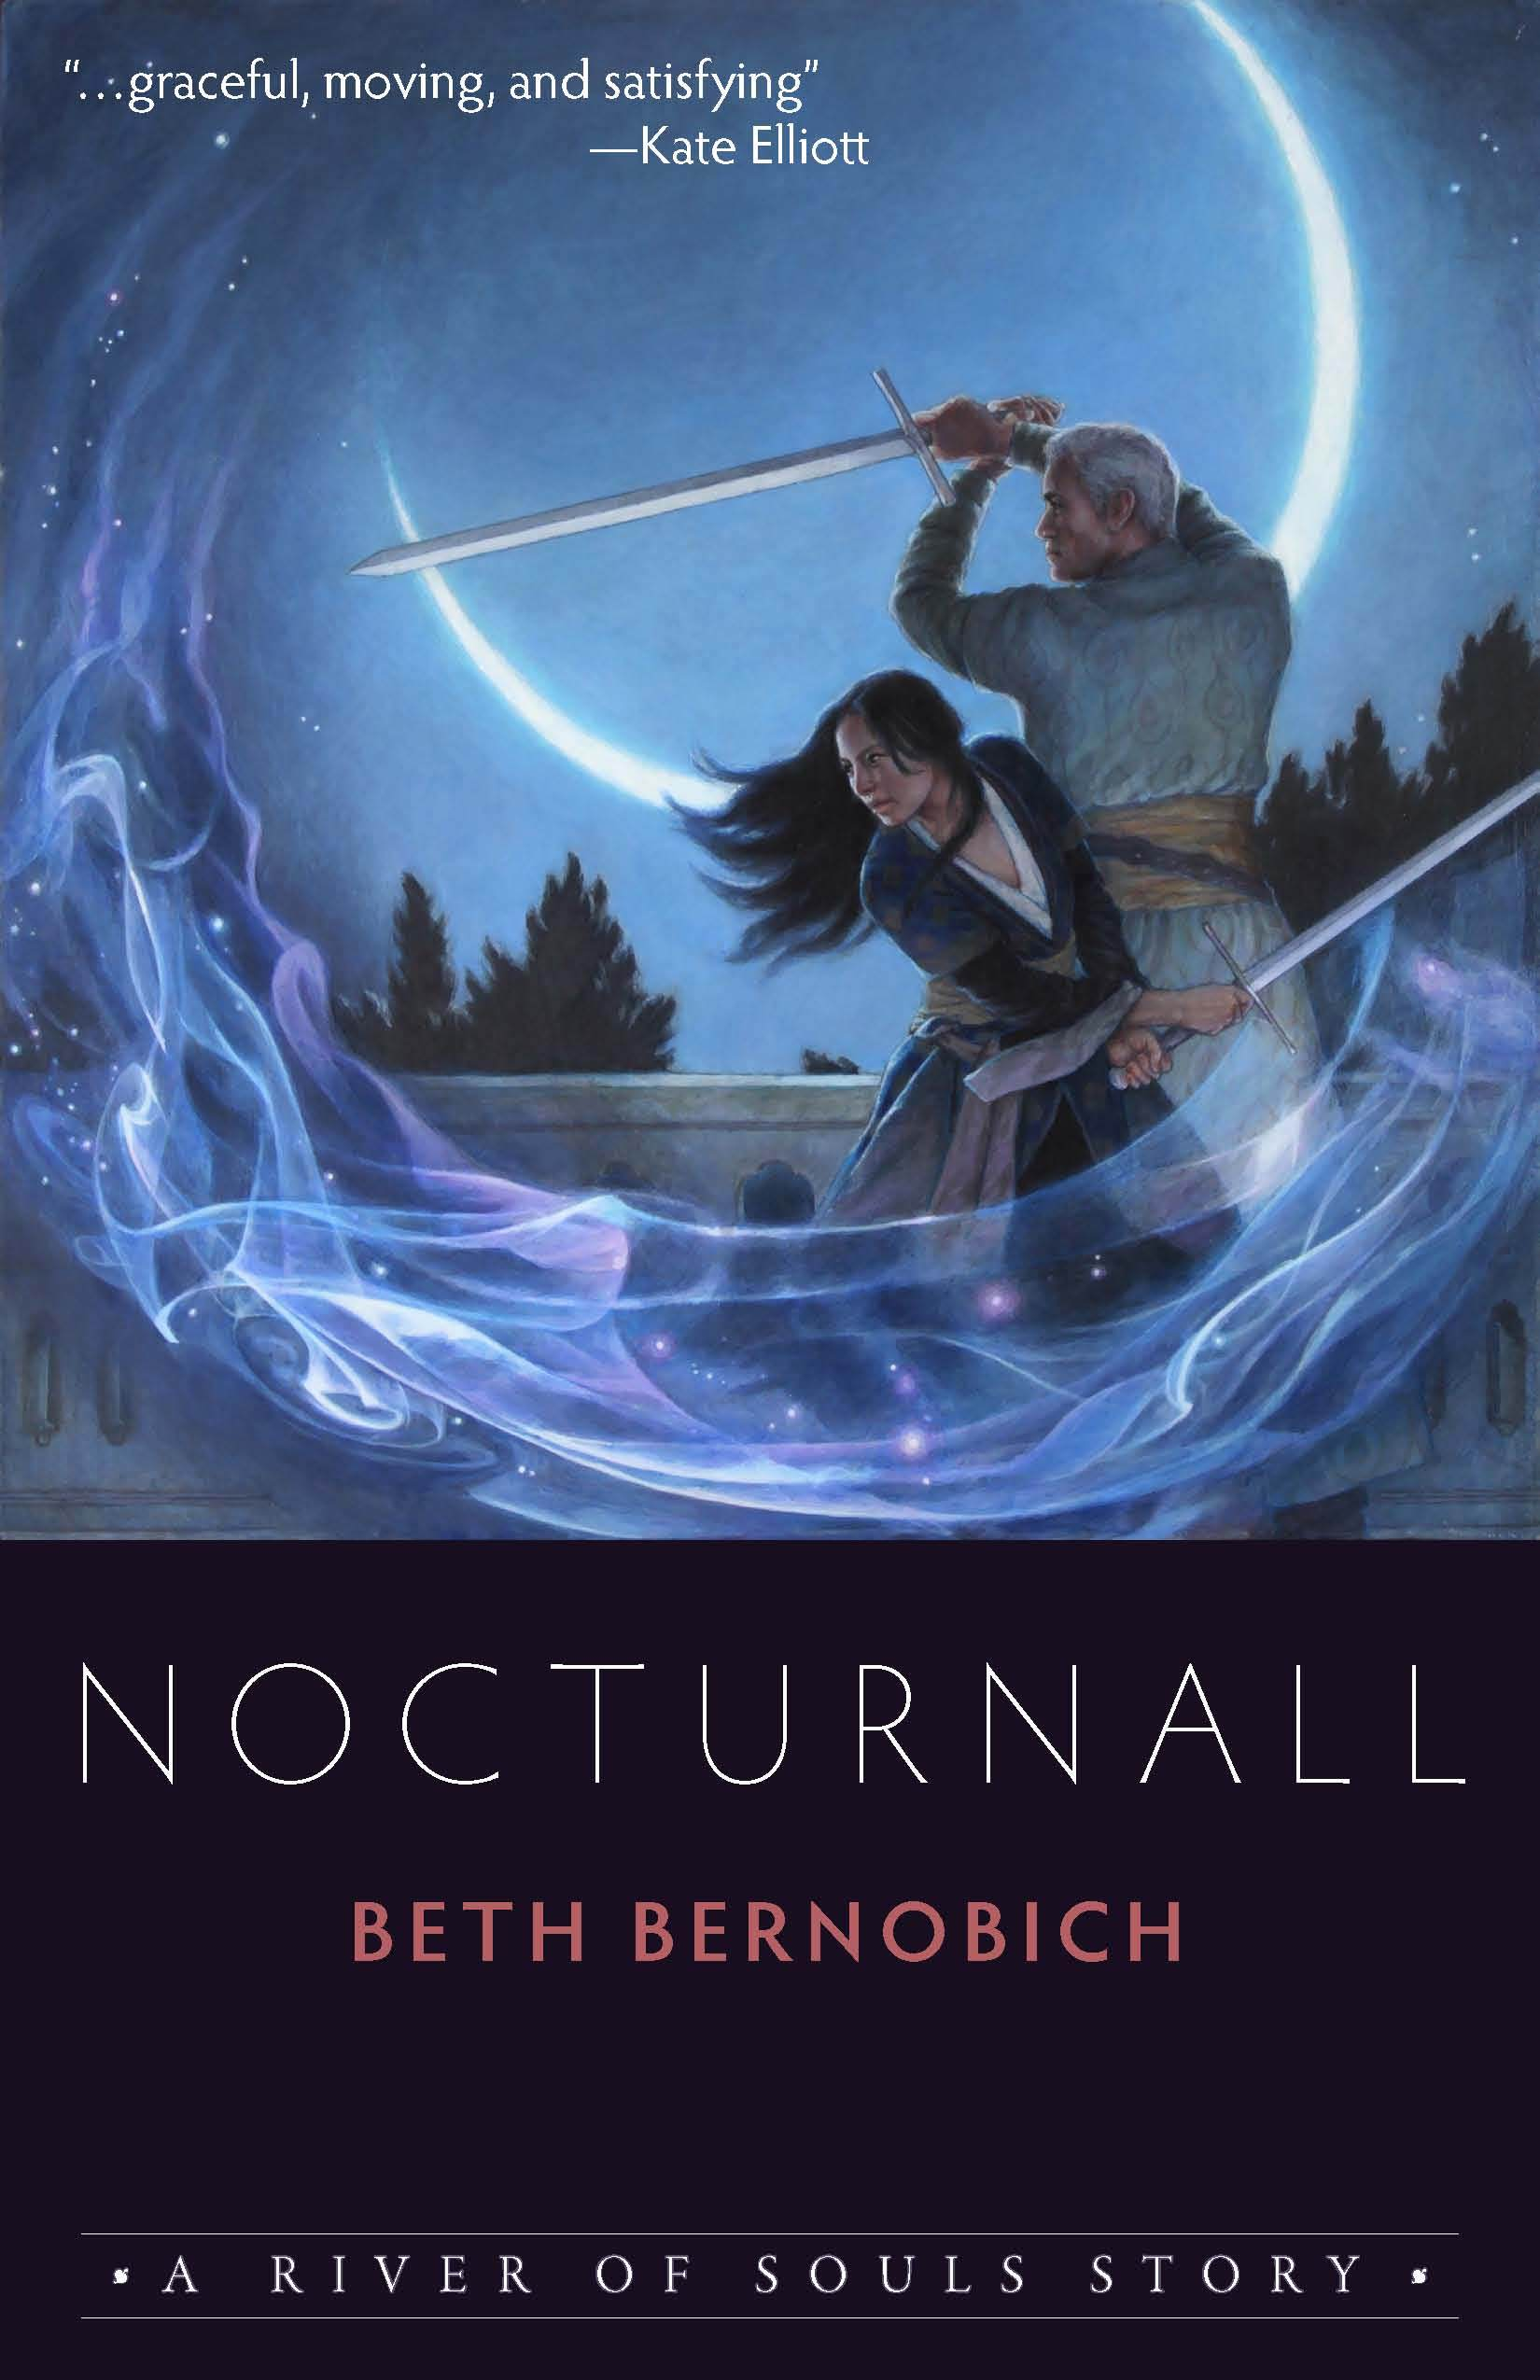 Nocturnall, A River of Souls Story Beth Bernobich